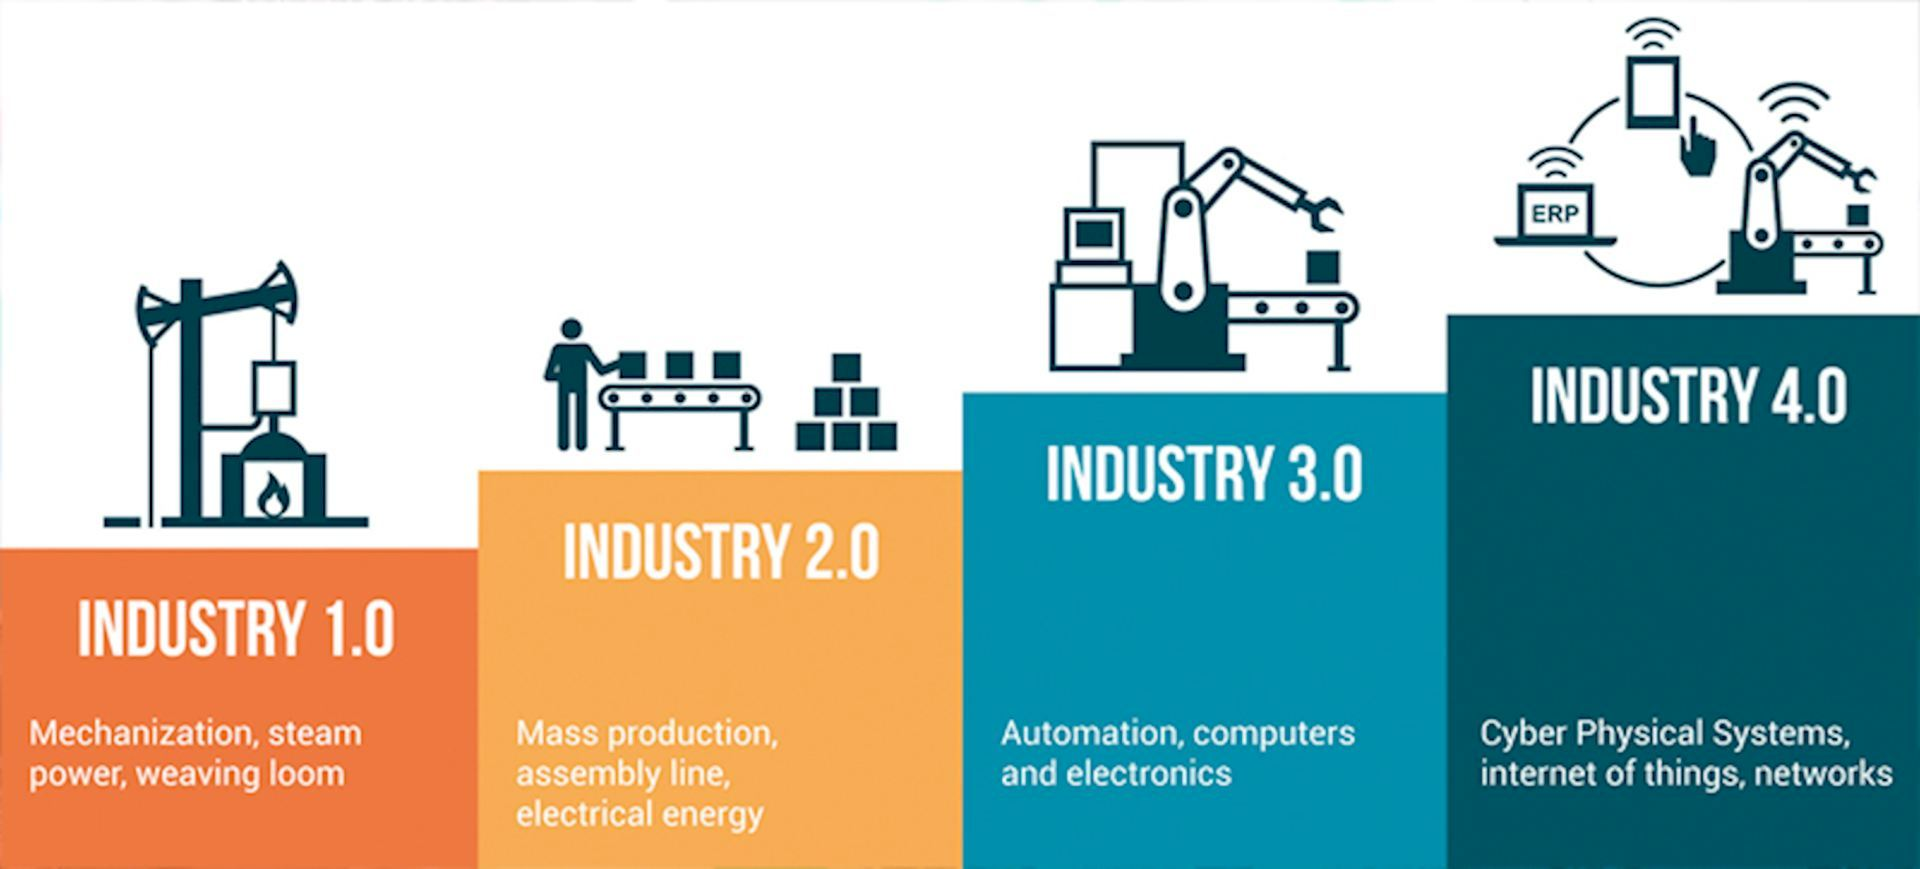 Industry 4.0 - future proof